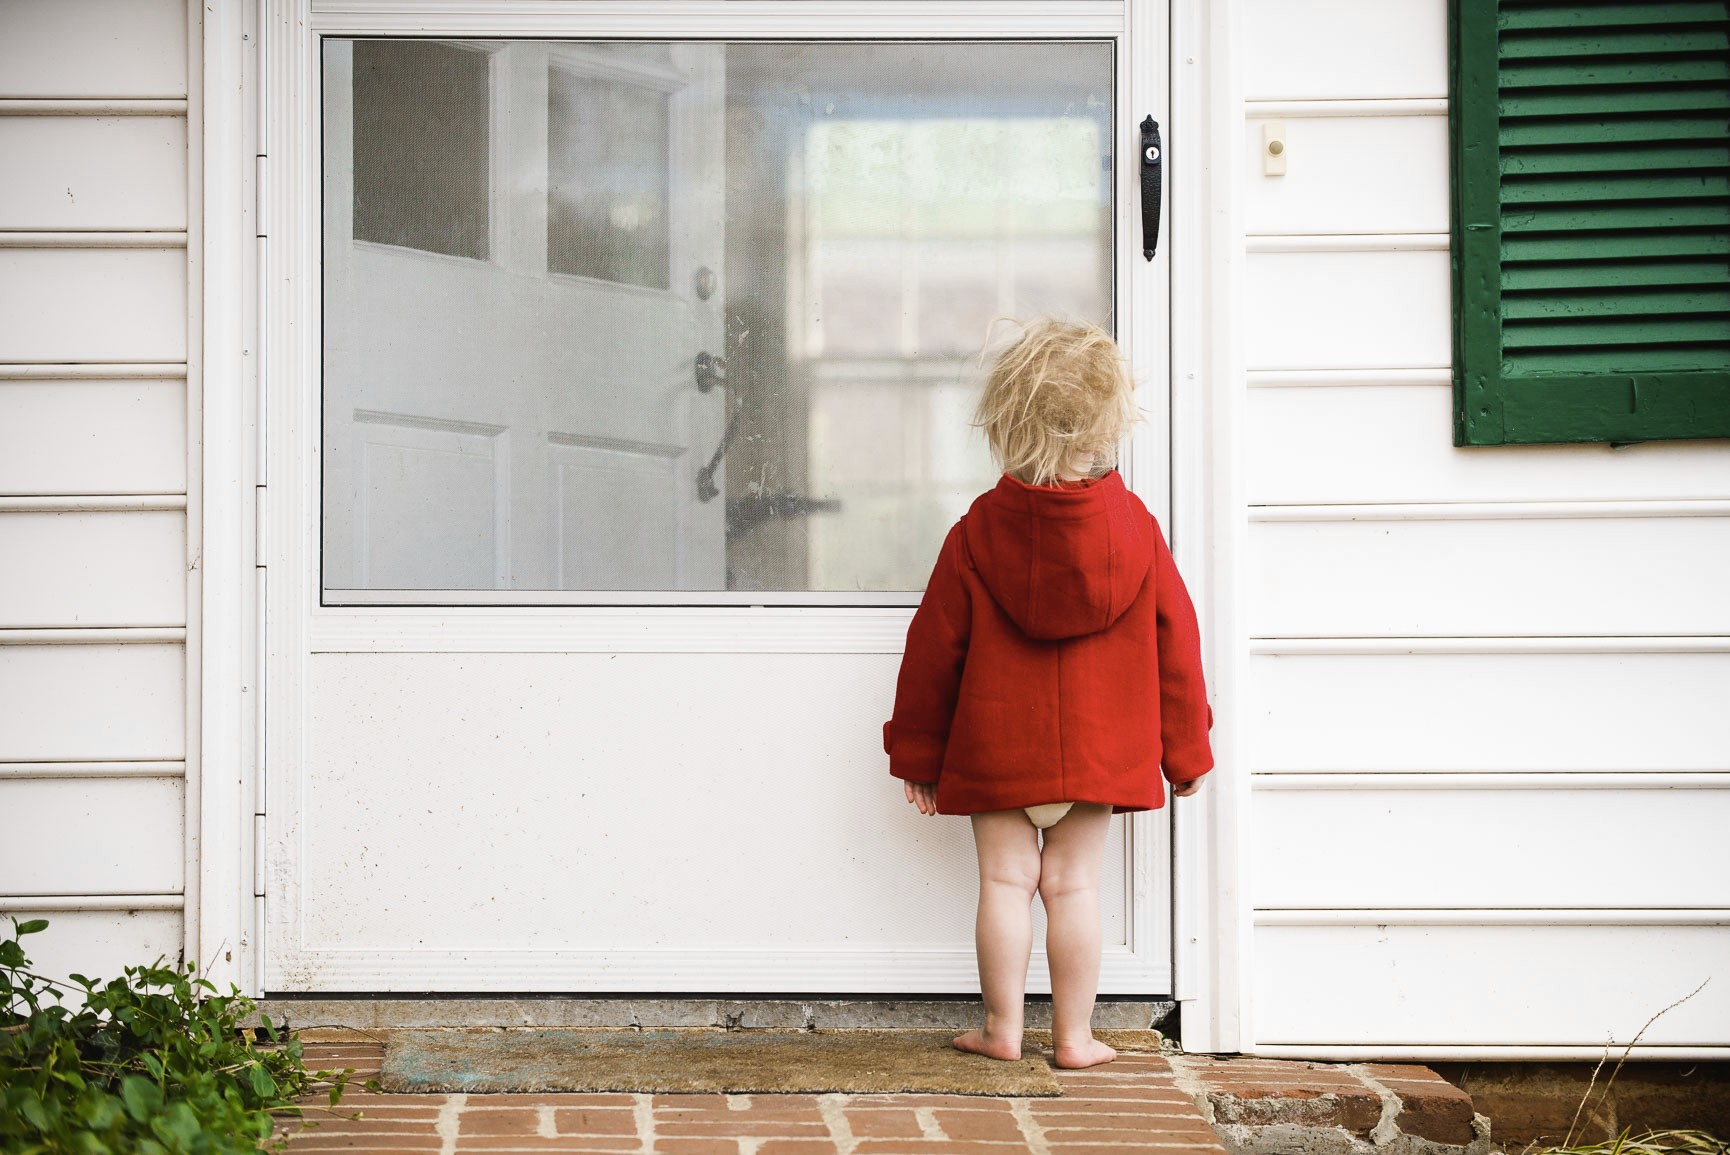 Everyday-Life-by-Sarah-Wilkerson-1730px-1206